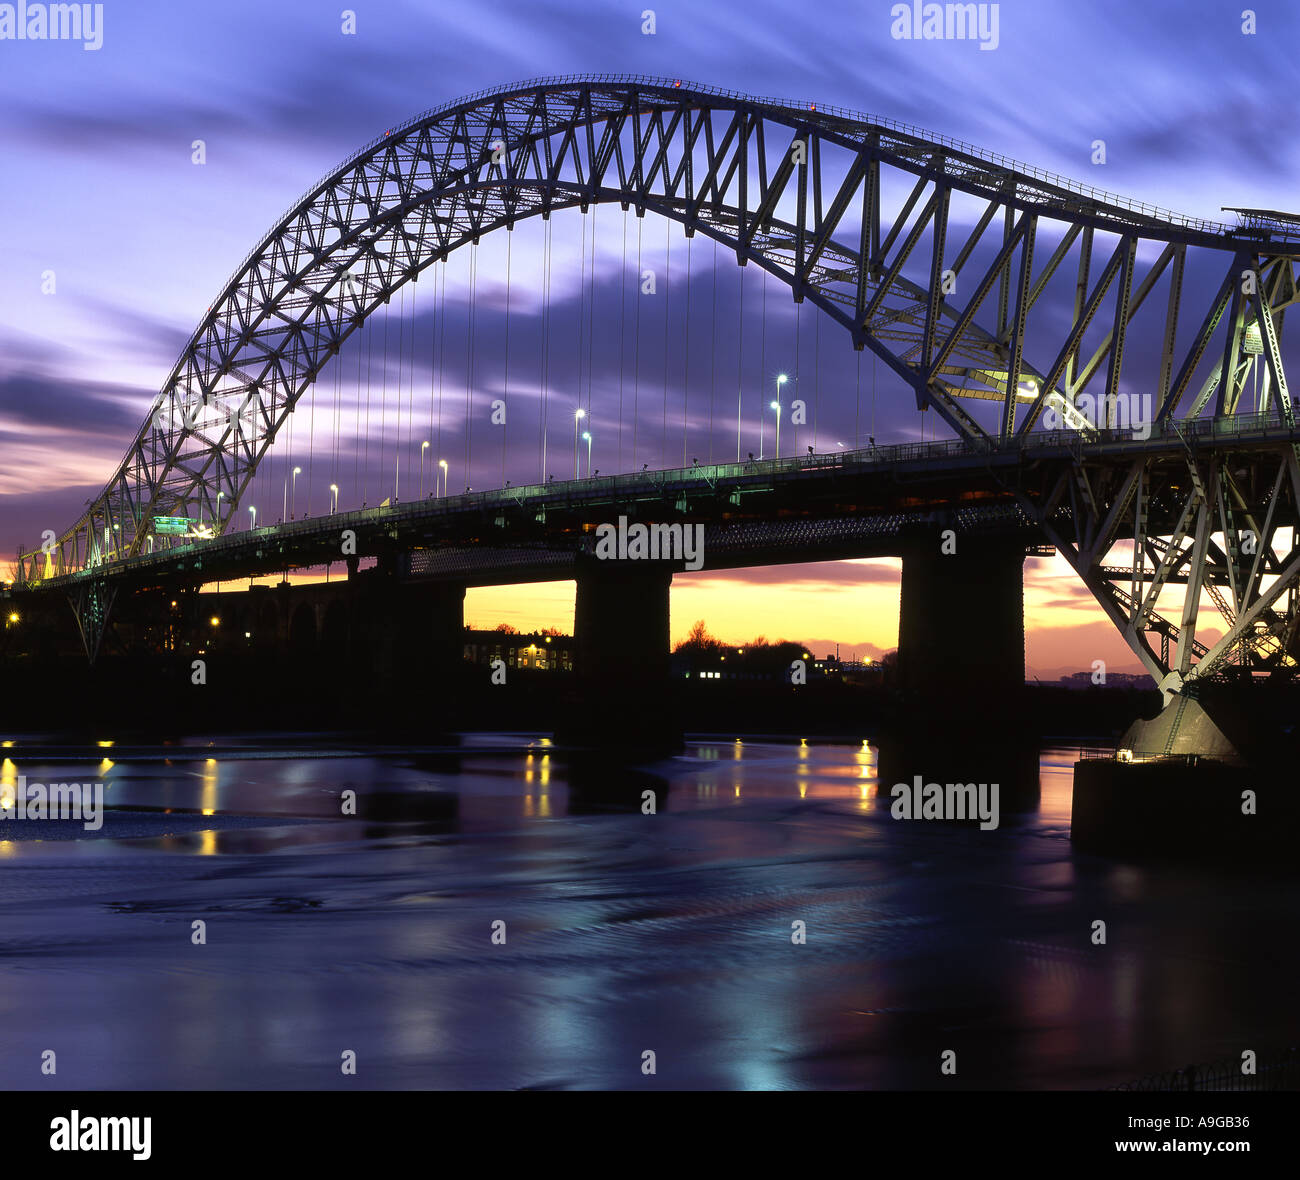 The Runcorn and Widnes Roadbridge Over the River Mersey at Night, Cheshire, England, UK - Stock Image